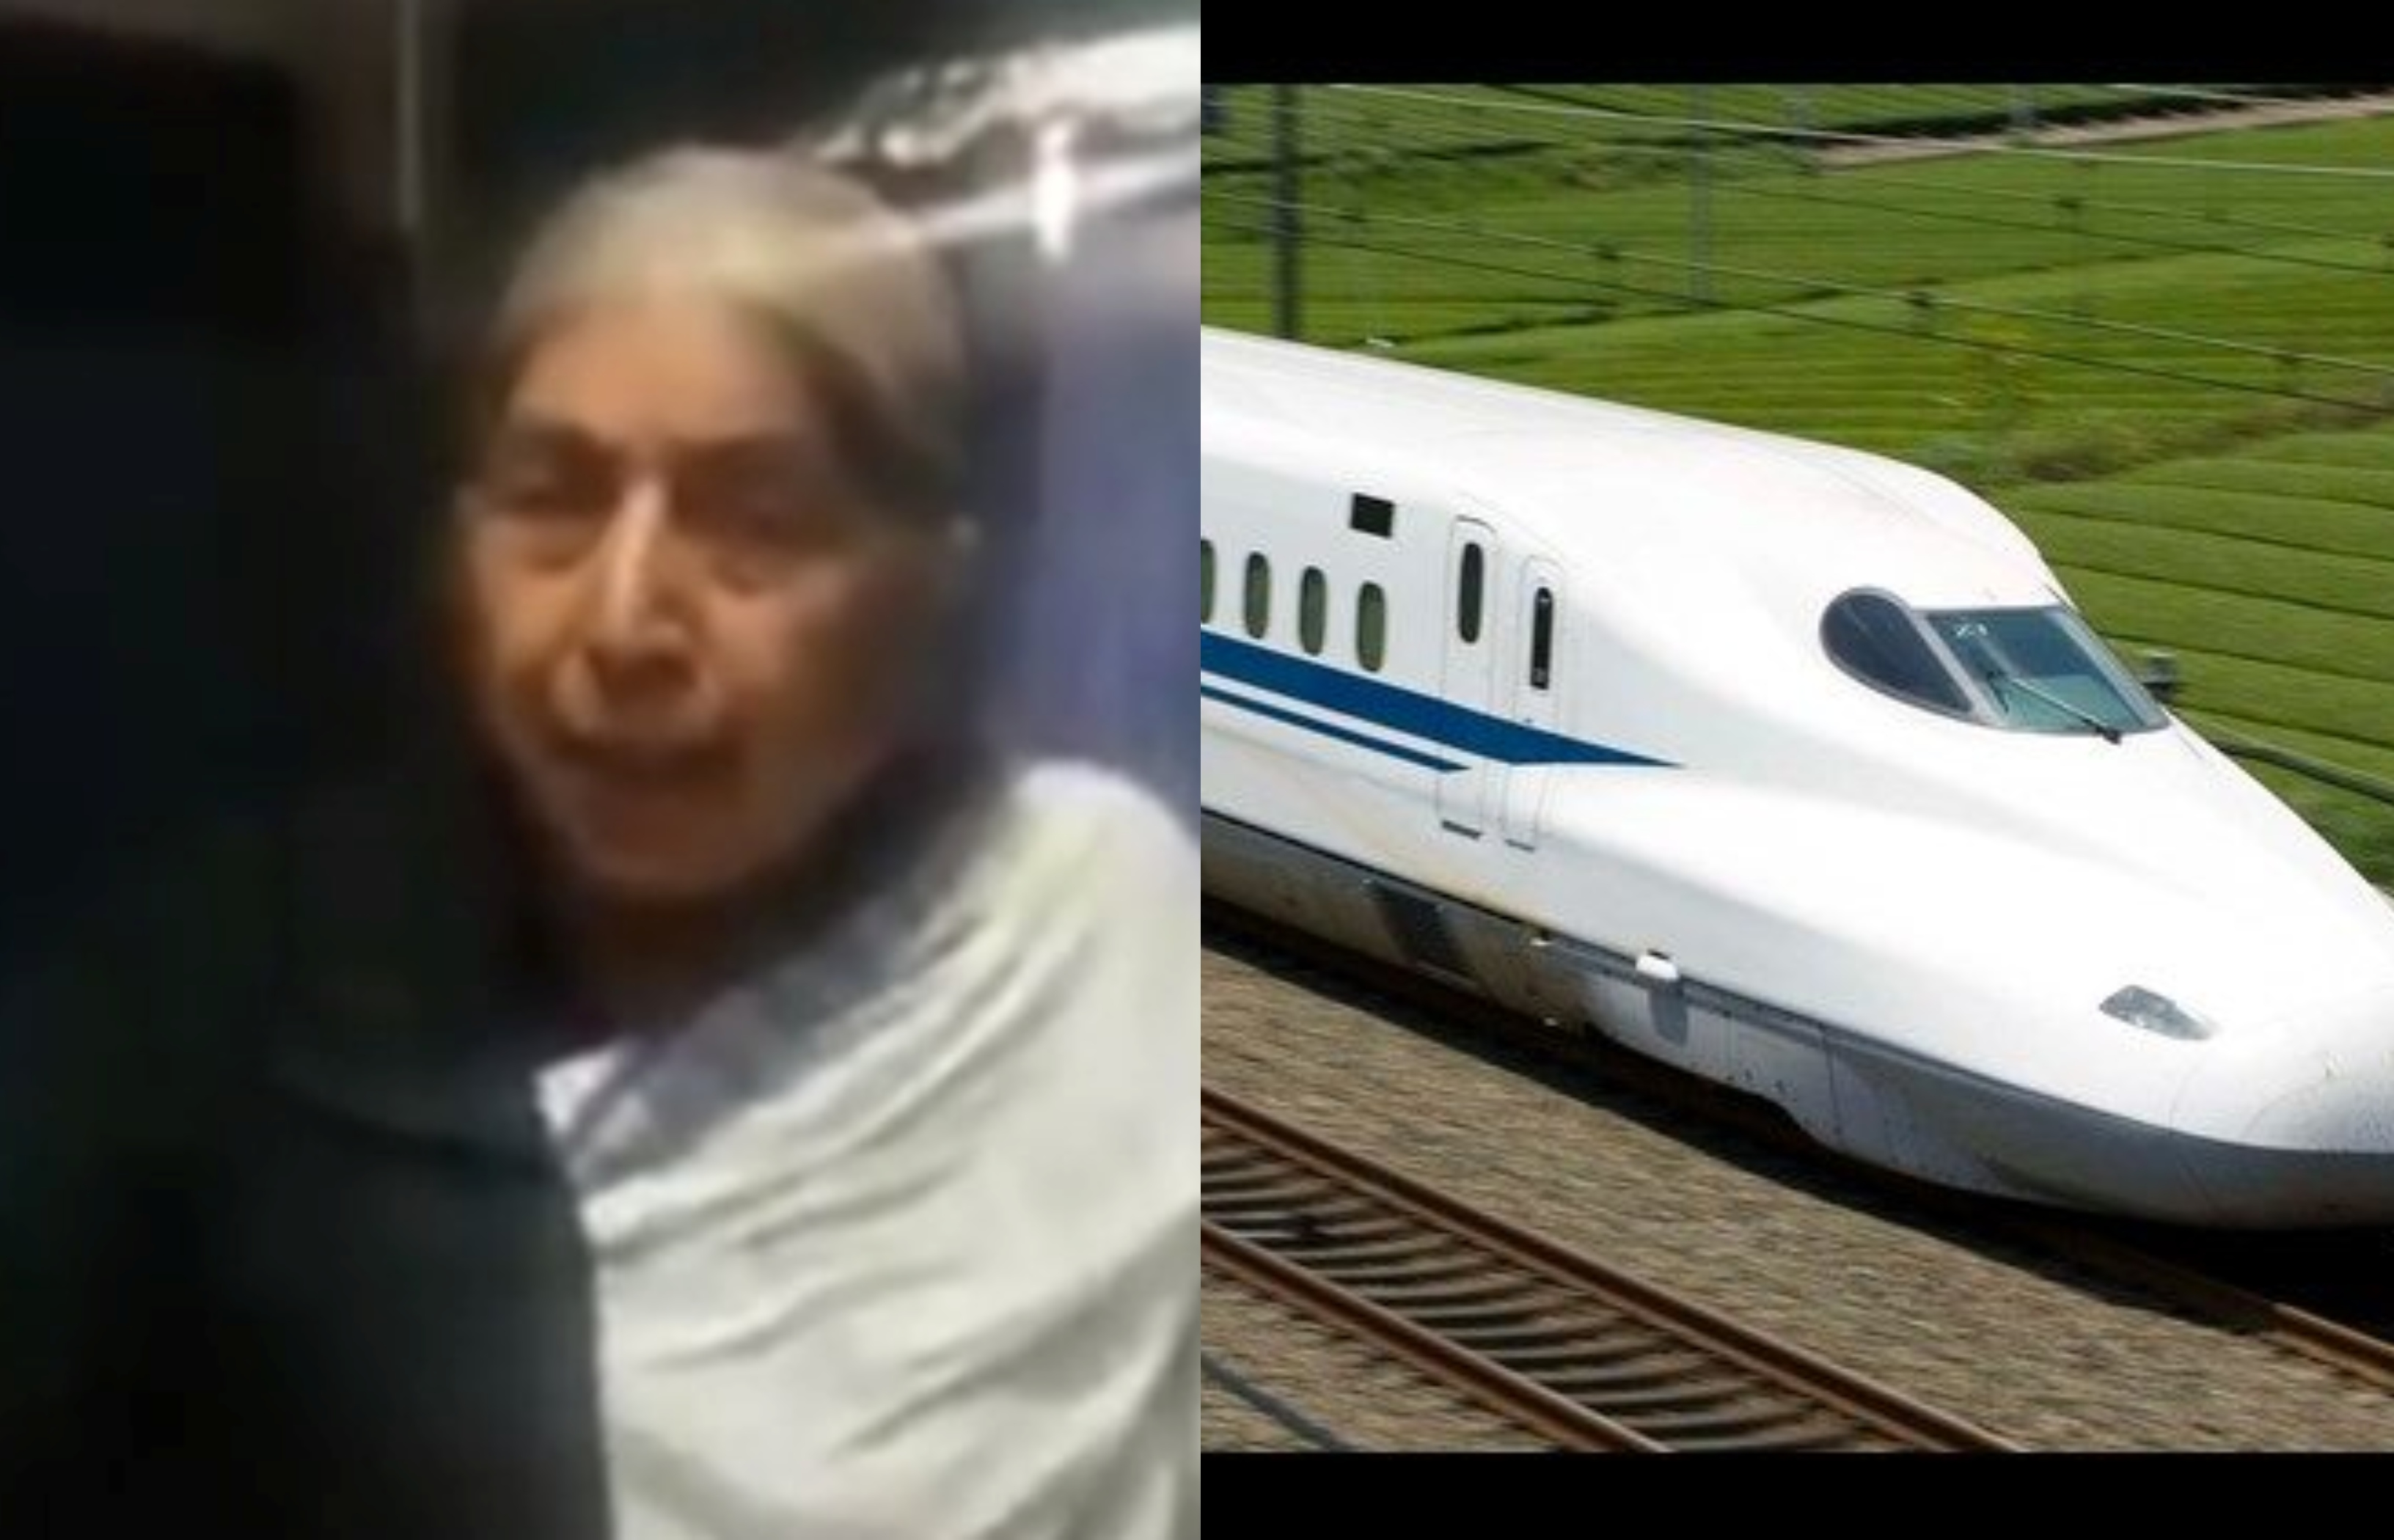 Bullet Train, BJP, Leader, Rant, Laxmi Kanta Chawla, Delay, Indian Railways, NewsMobile, Mobile, news, India, Prime Minister, Narendra Modi, Piyush Goyal